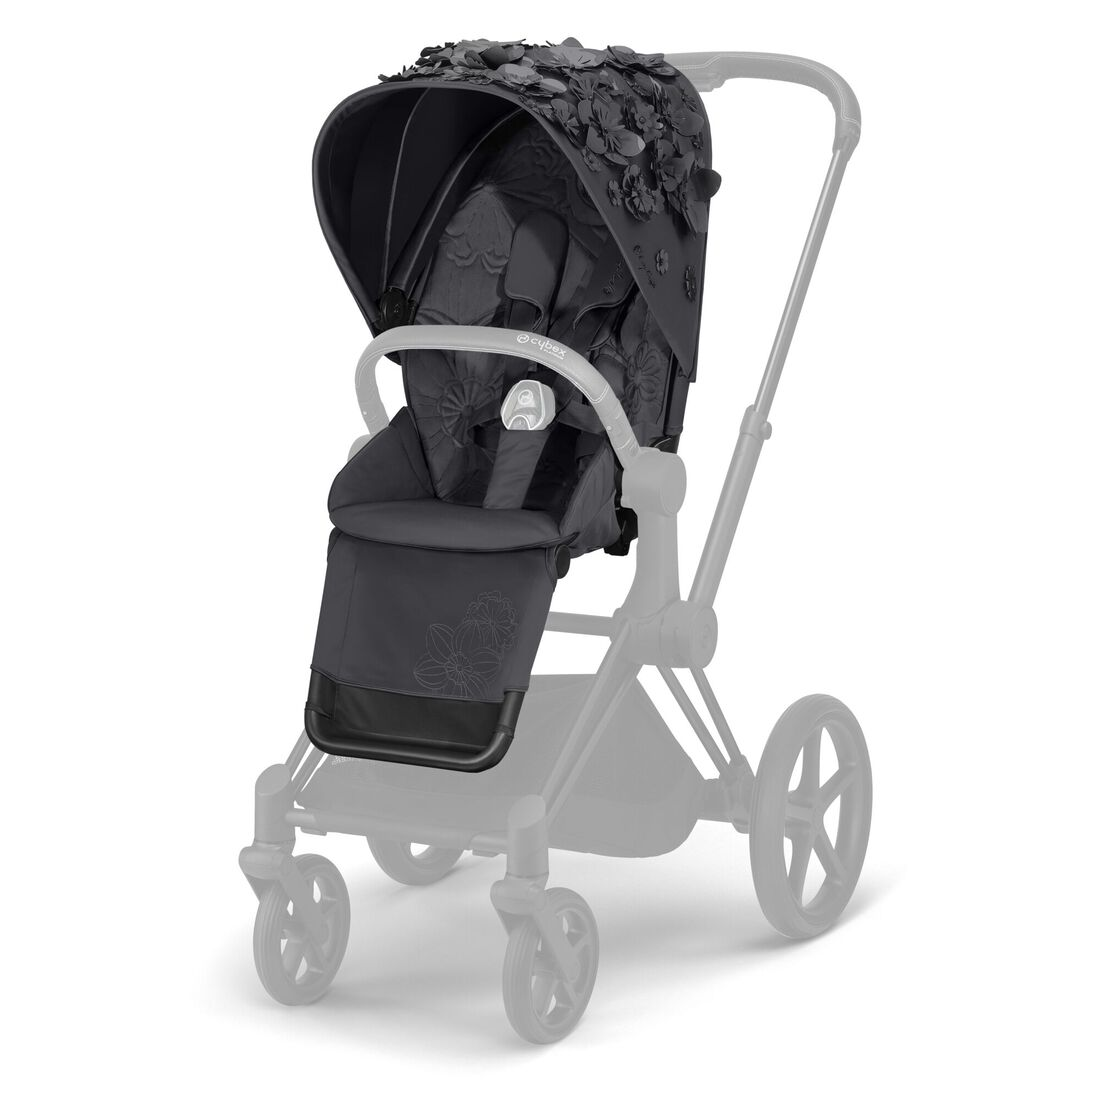 CYBEX Priam Seat Pack - Dream Grey in Dream Grey large image number 1